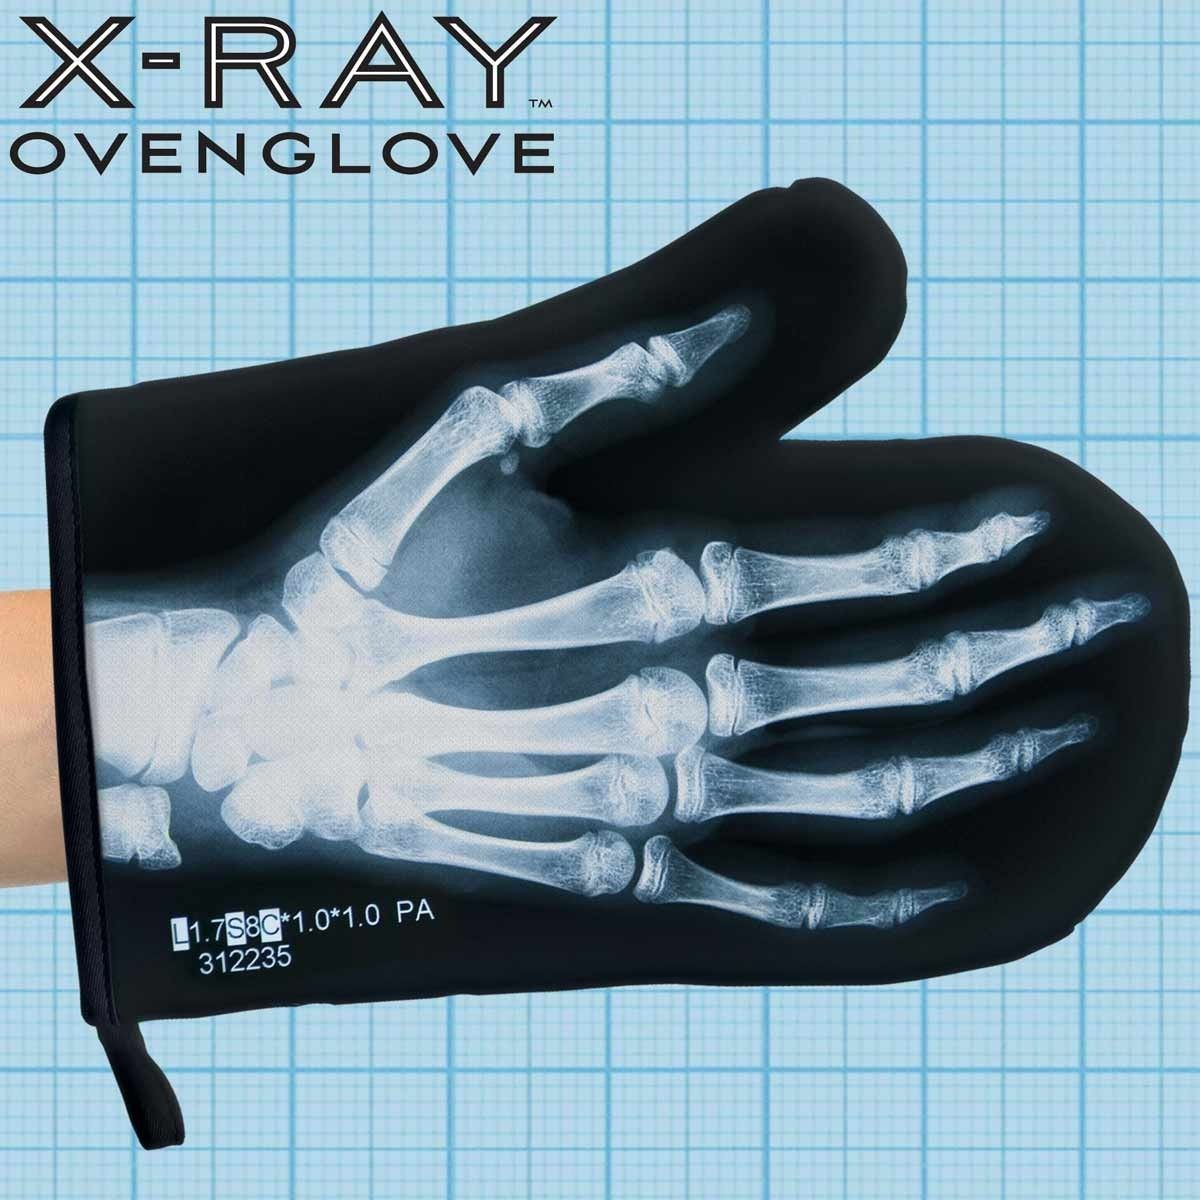 X-Ray Oven Glove | Christmas gift ideas (especially for him ...